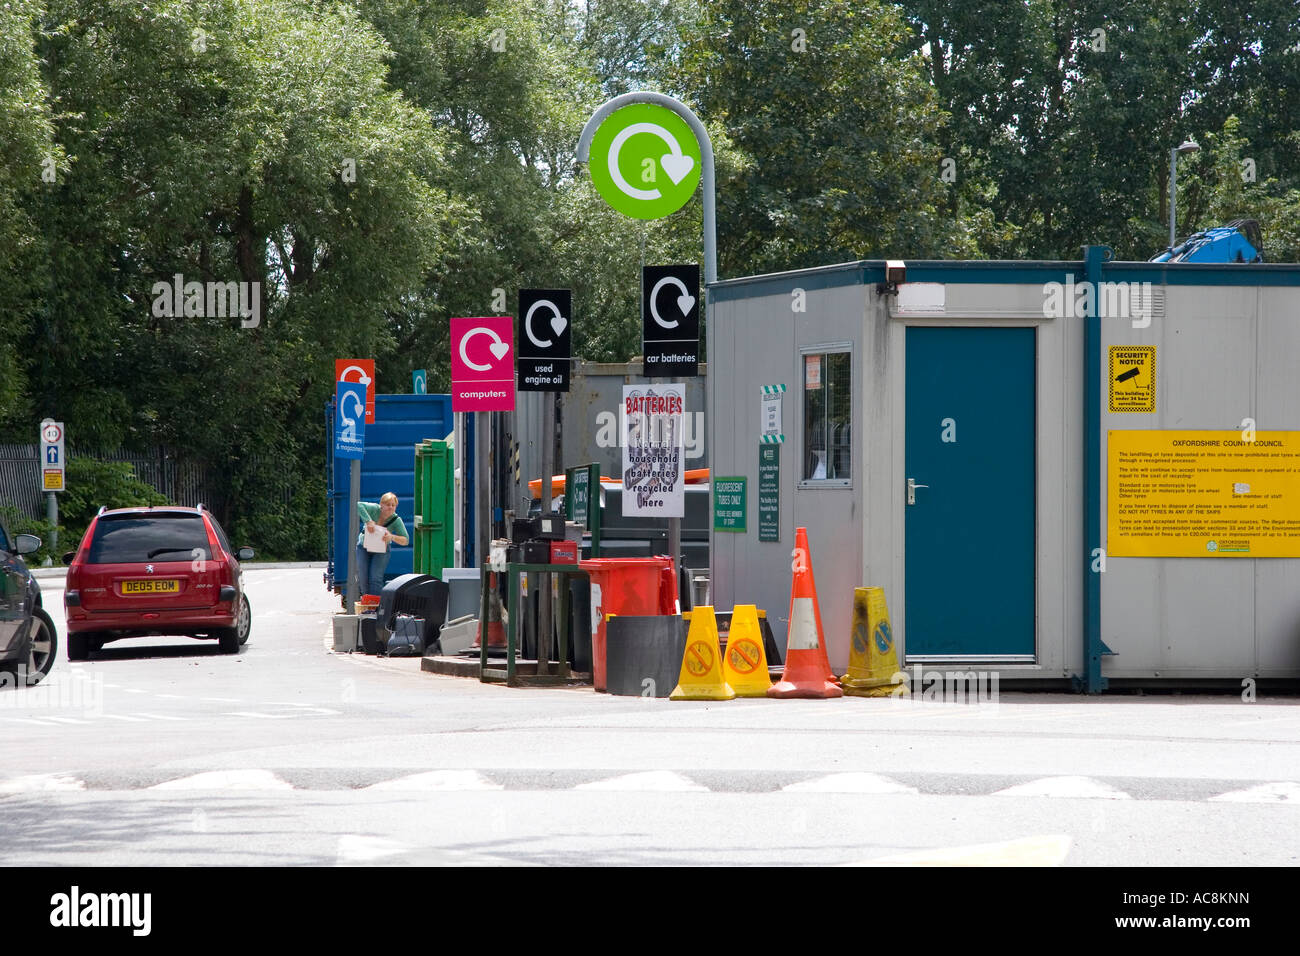 Waste and recycling centre in Oxfordshire 3 - Stock Image